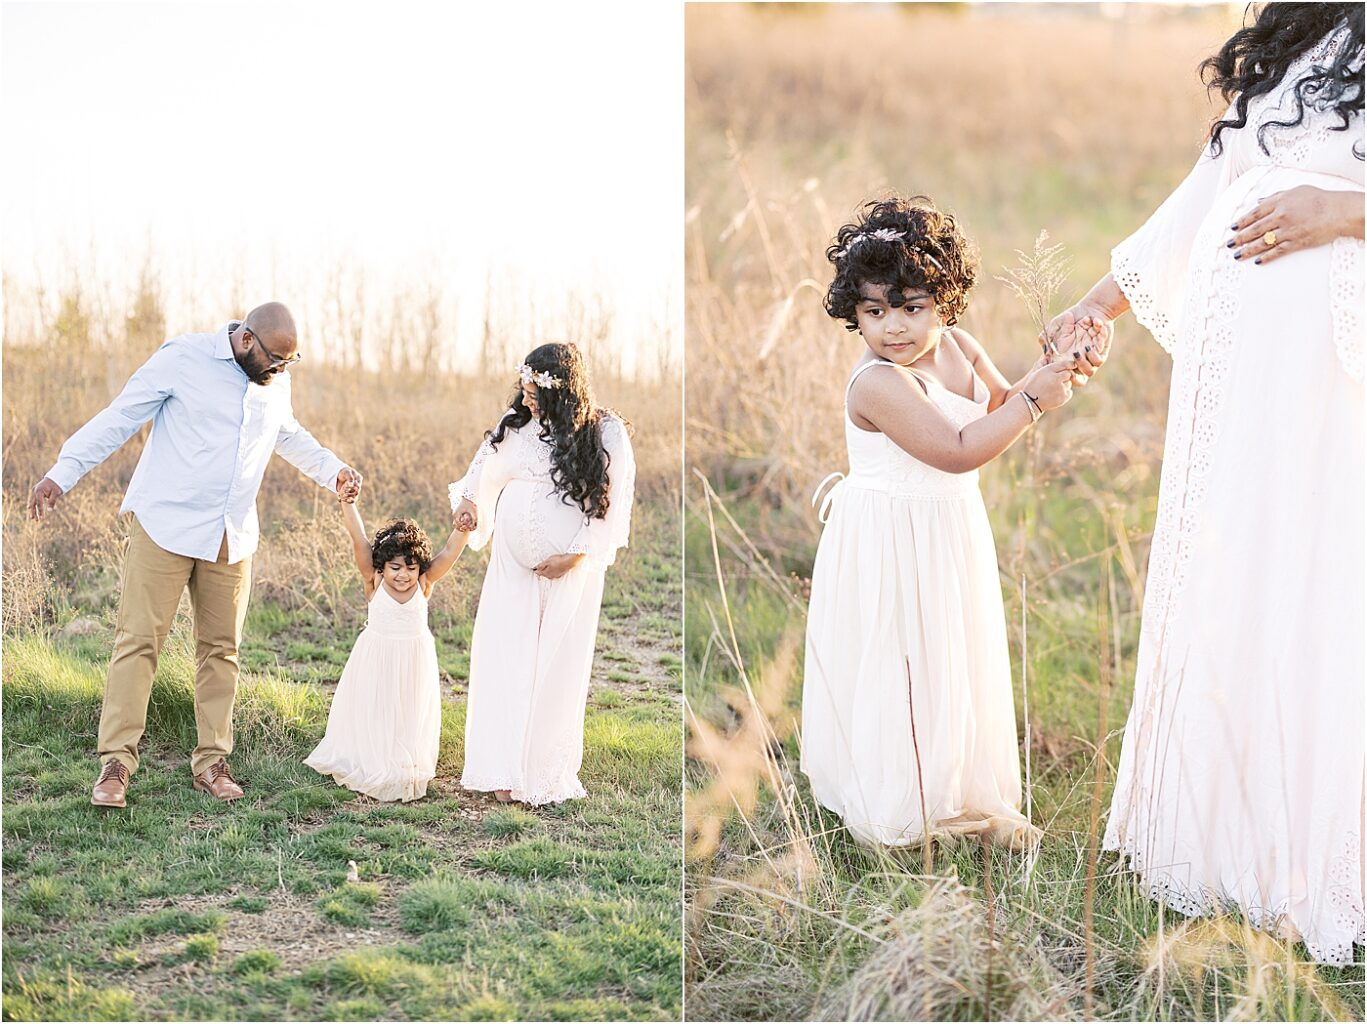 Outdoor maternity session with Mom, Dad and toddler daughter. Photo by Lindsay Konopa Photography.